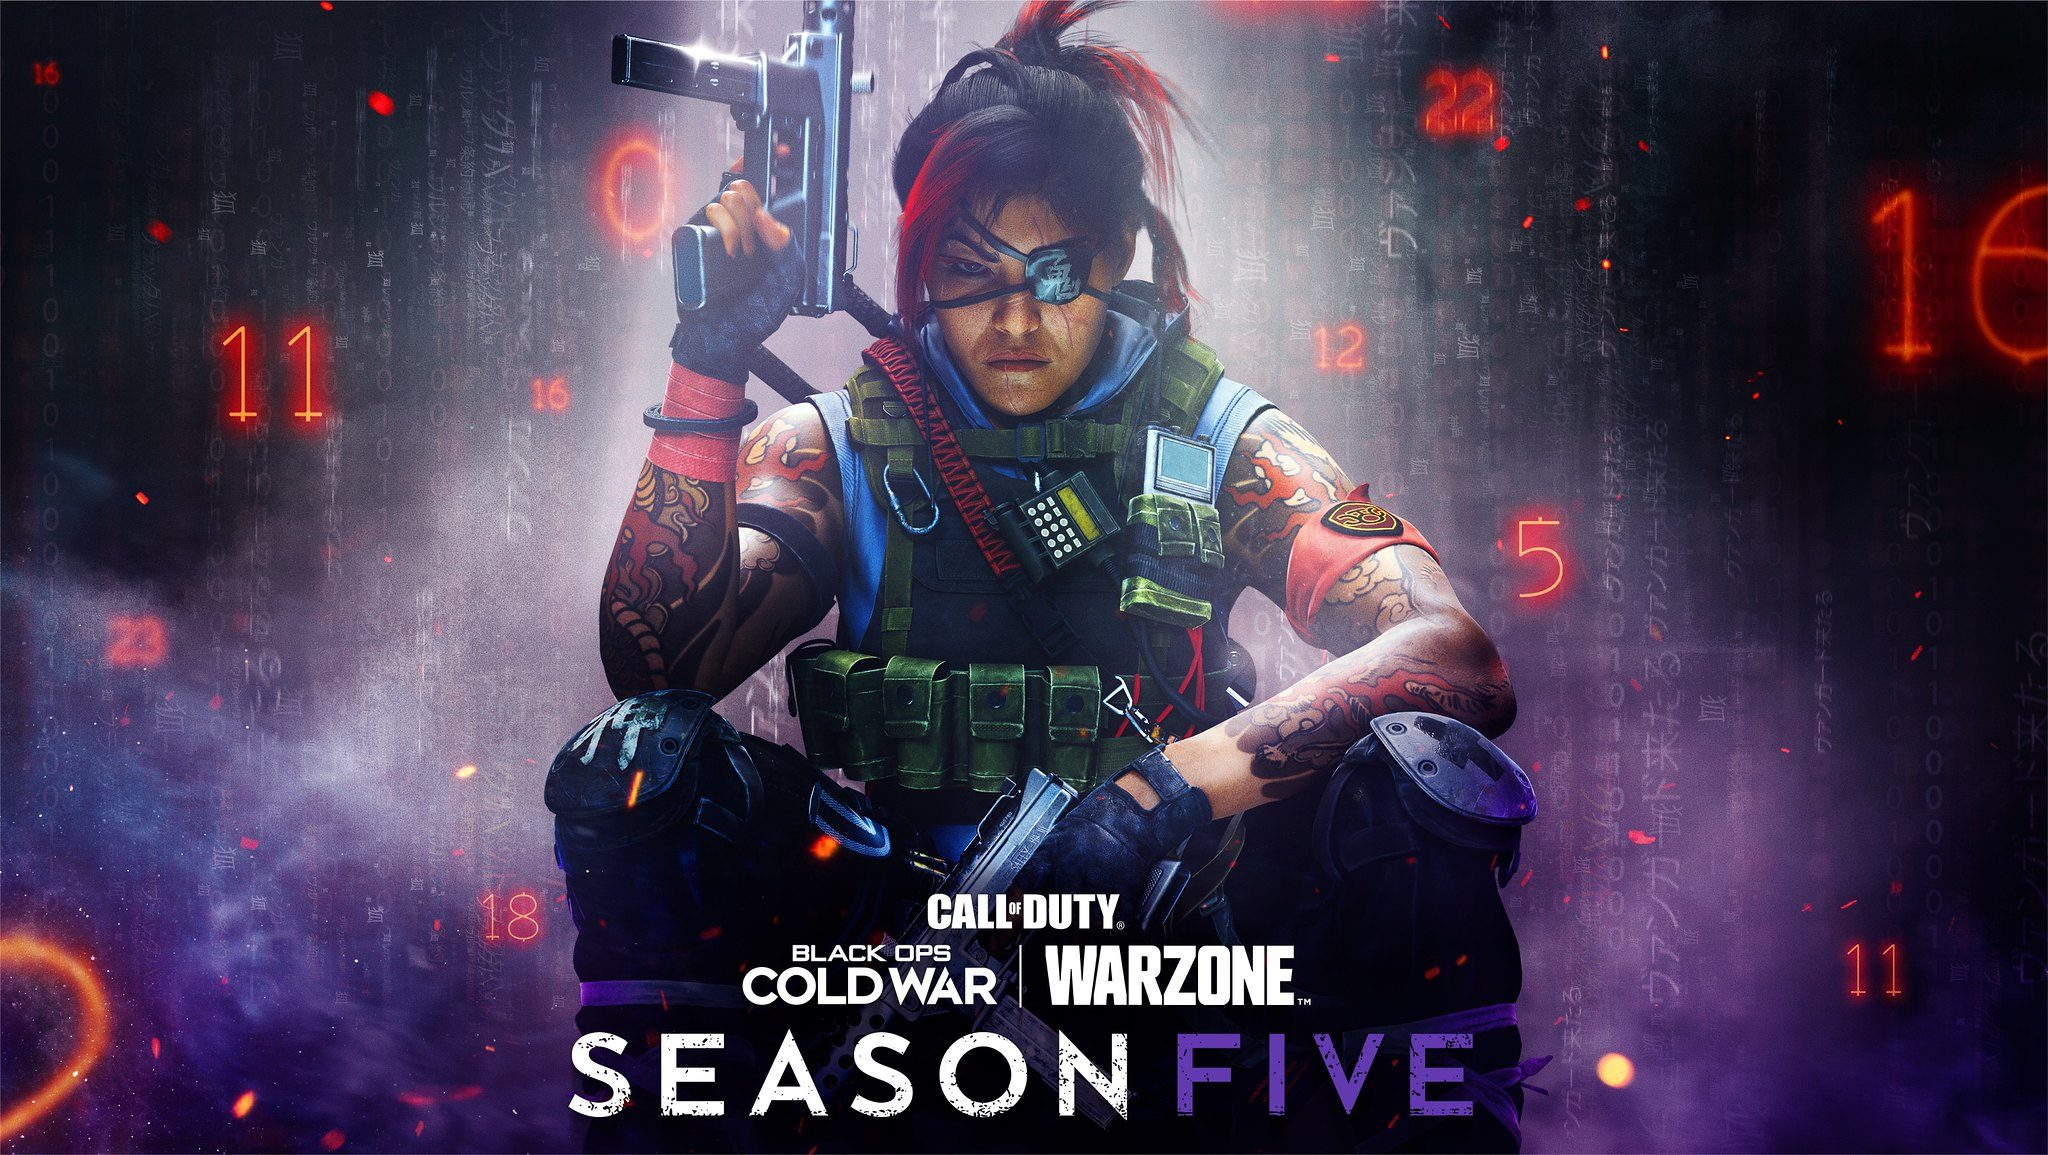 season-five-of-black-ops-chilly-war-and-warzone-launches-august-twelve